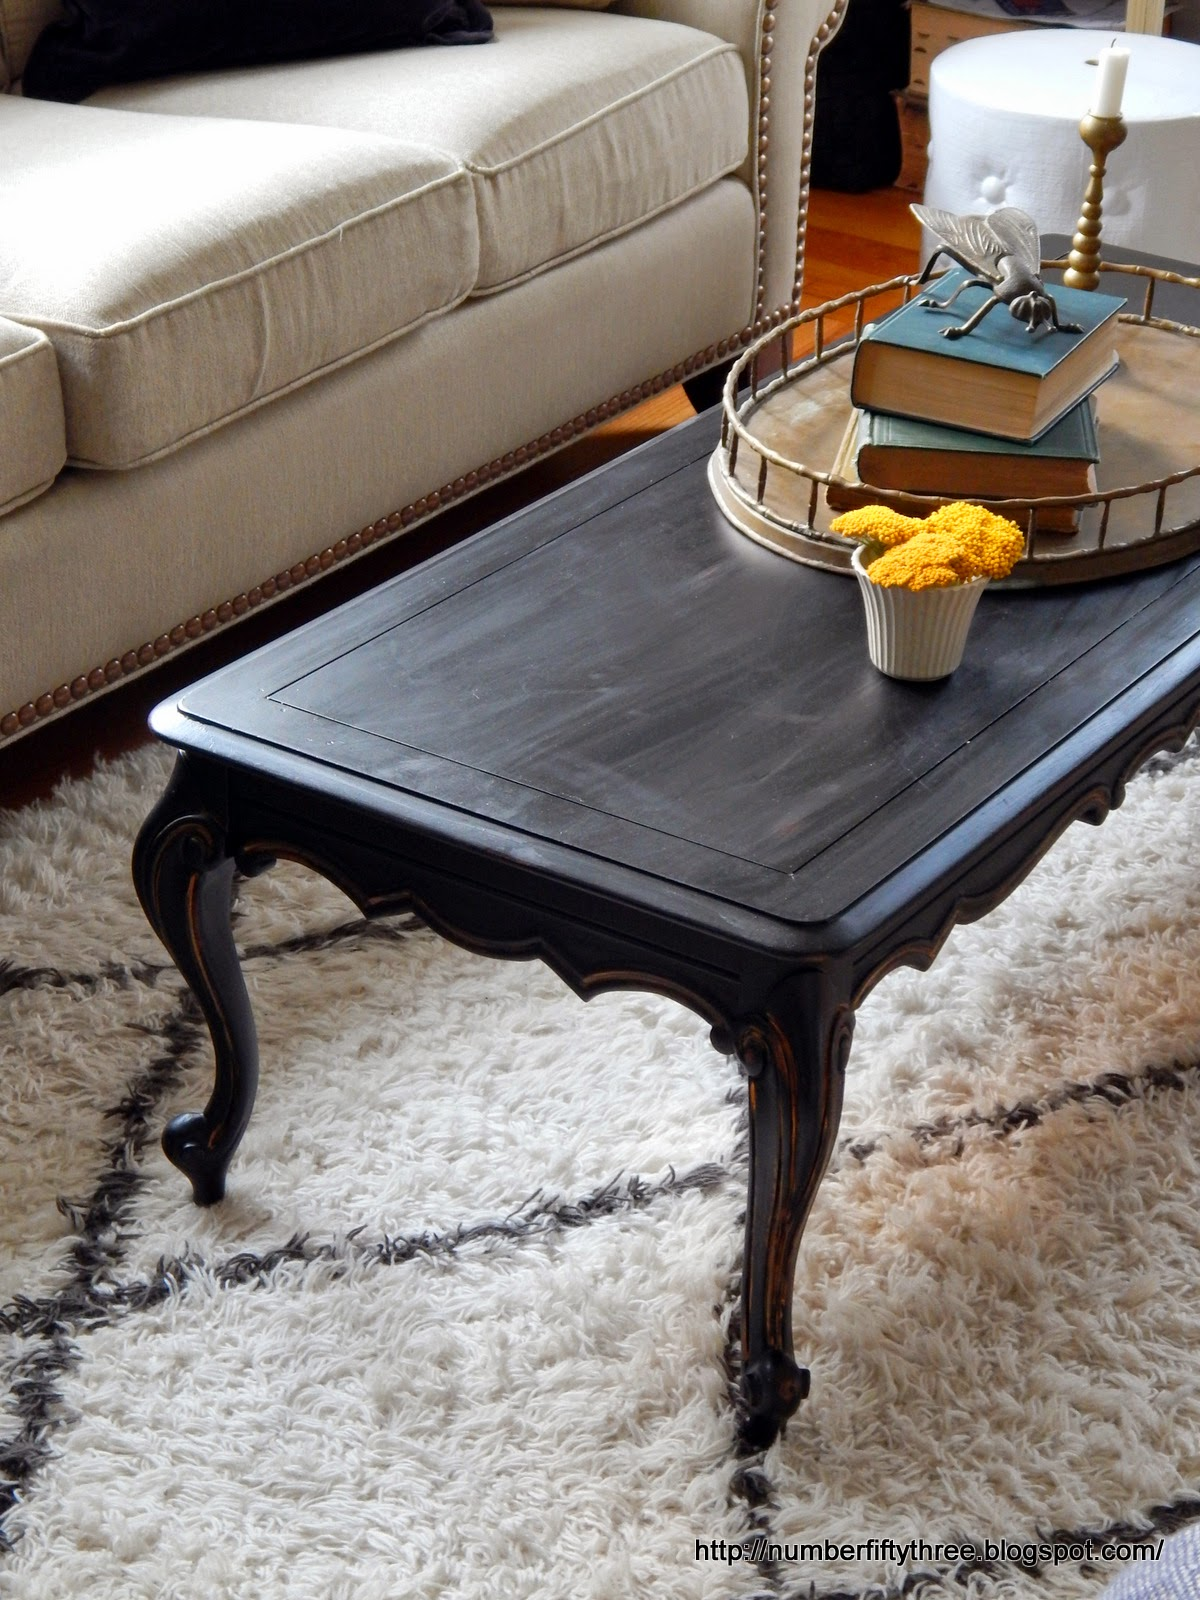 Number Fifty-Three: Classic Black & Gold Coffee Table